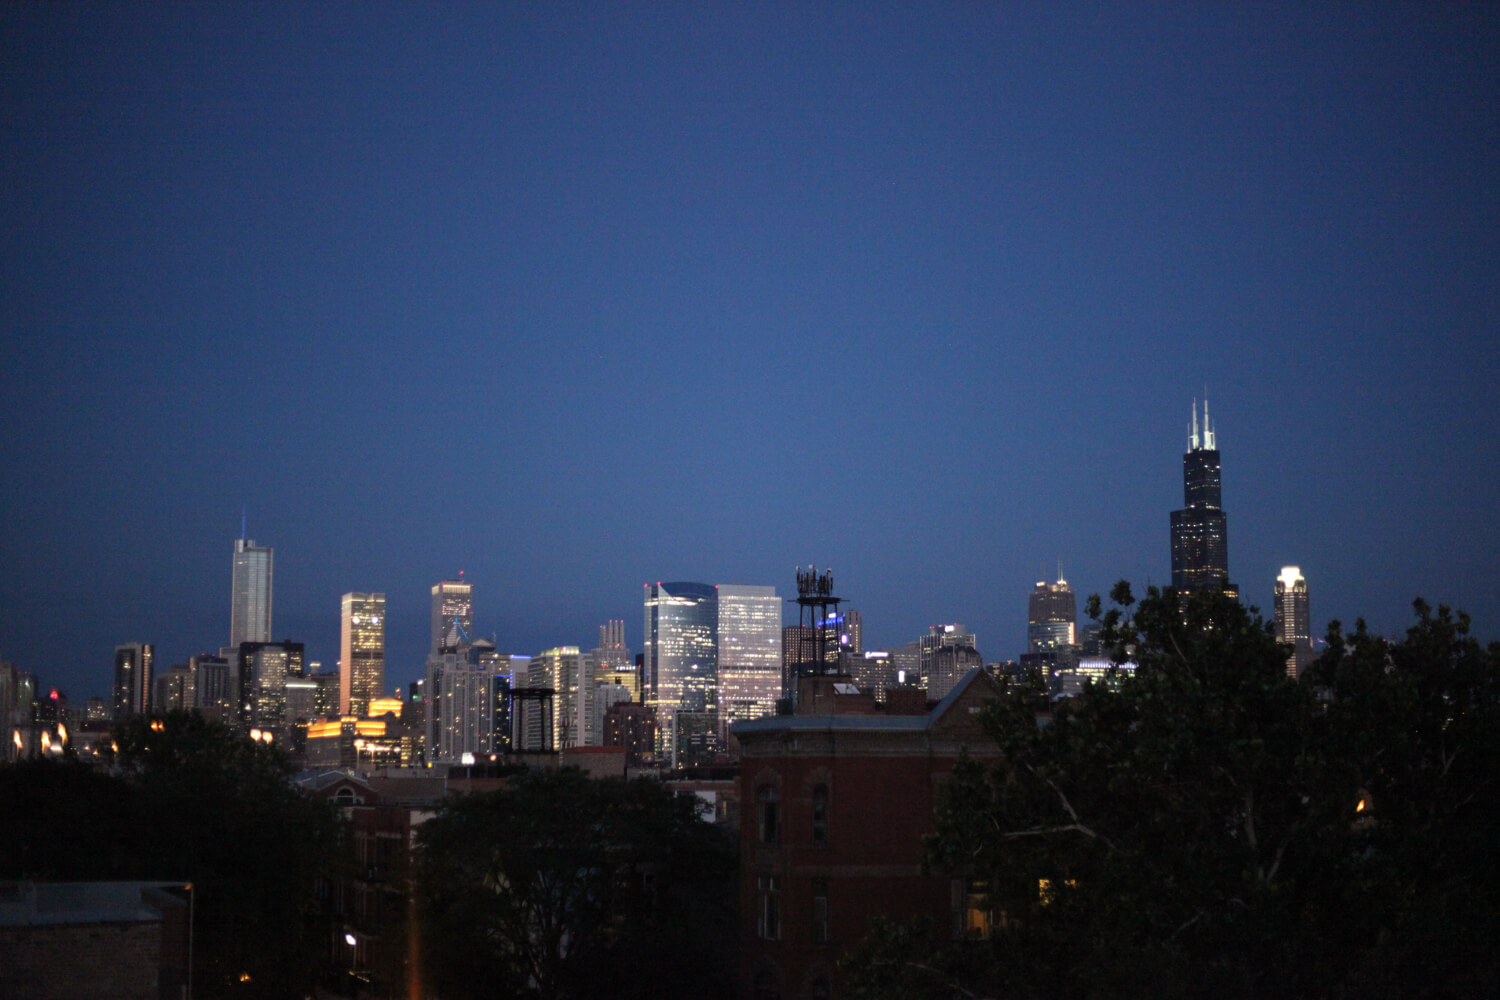 Nothing better than the Chicago skyline.